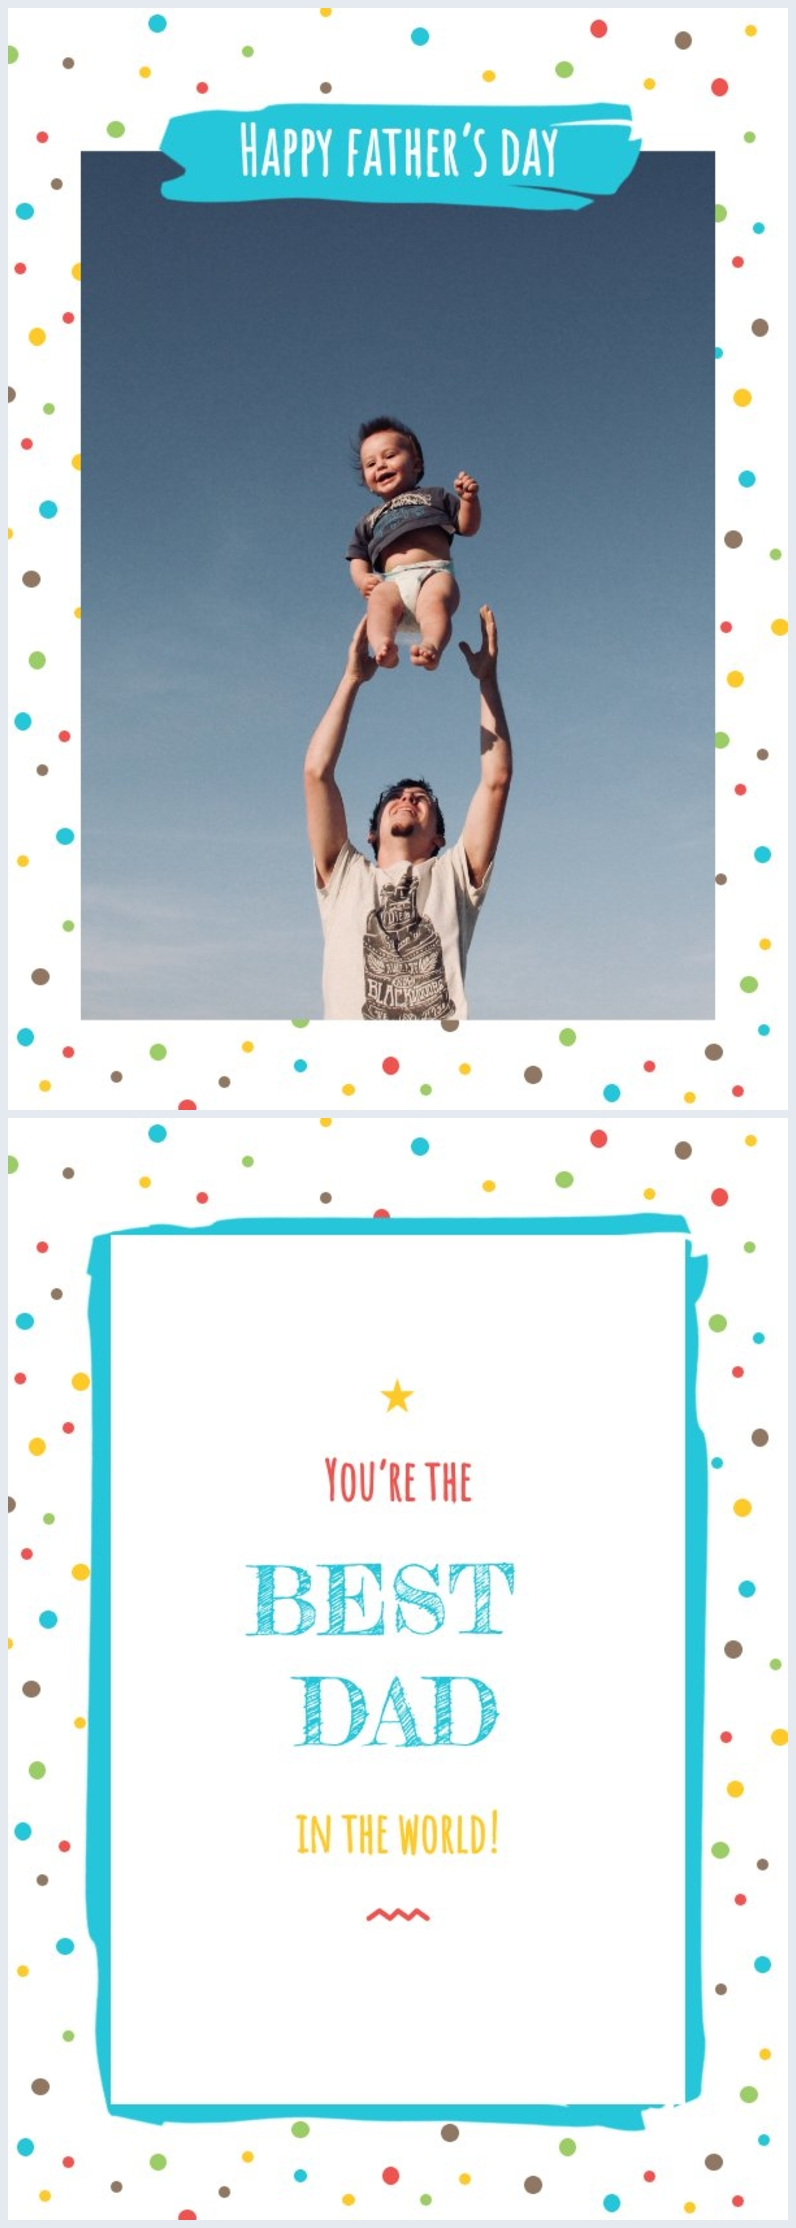 Editable colorful father's day card design